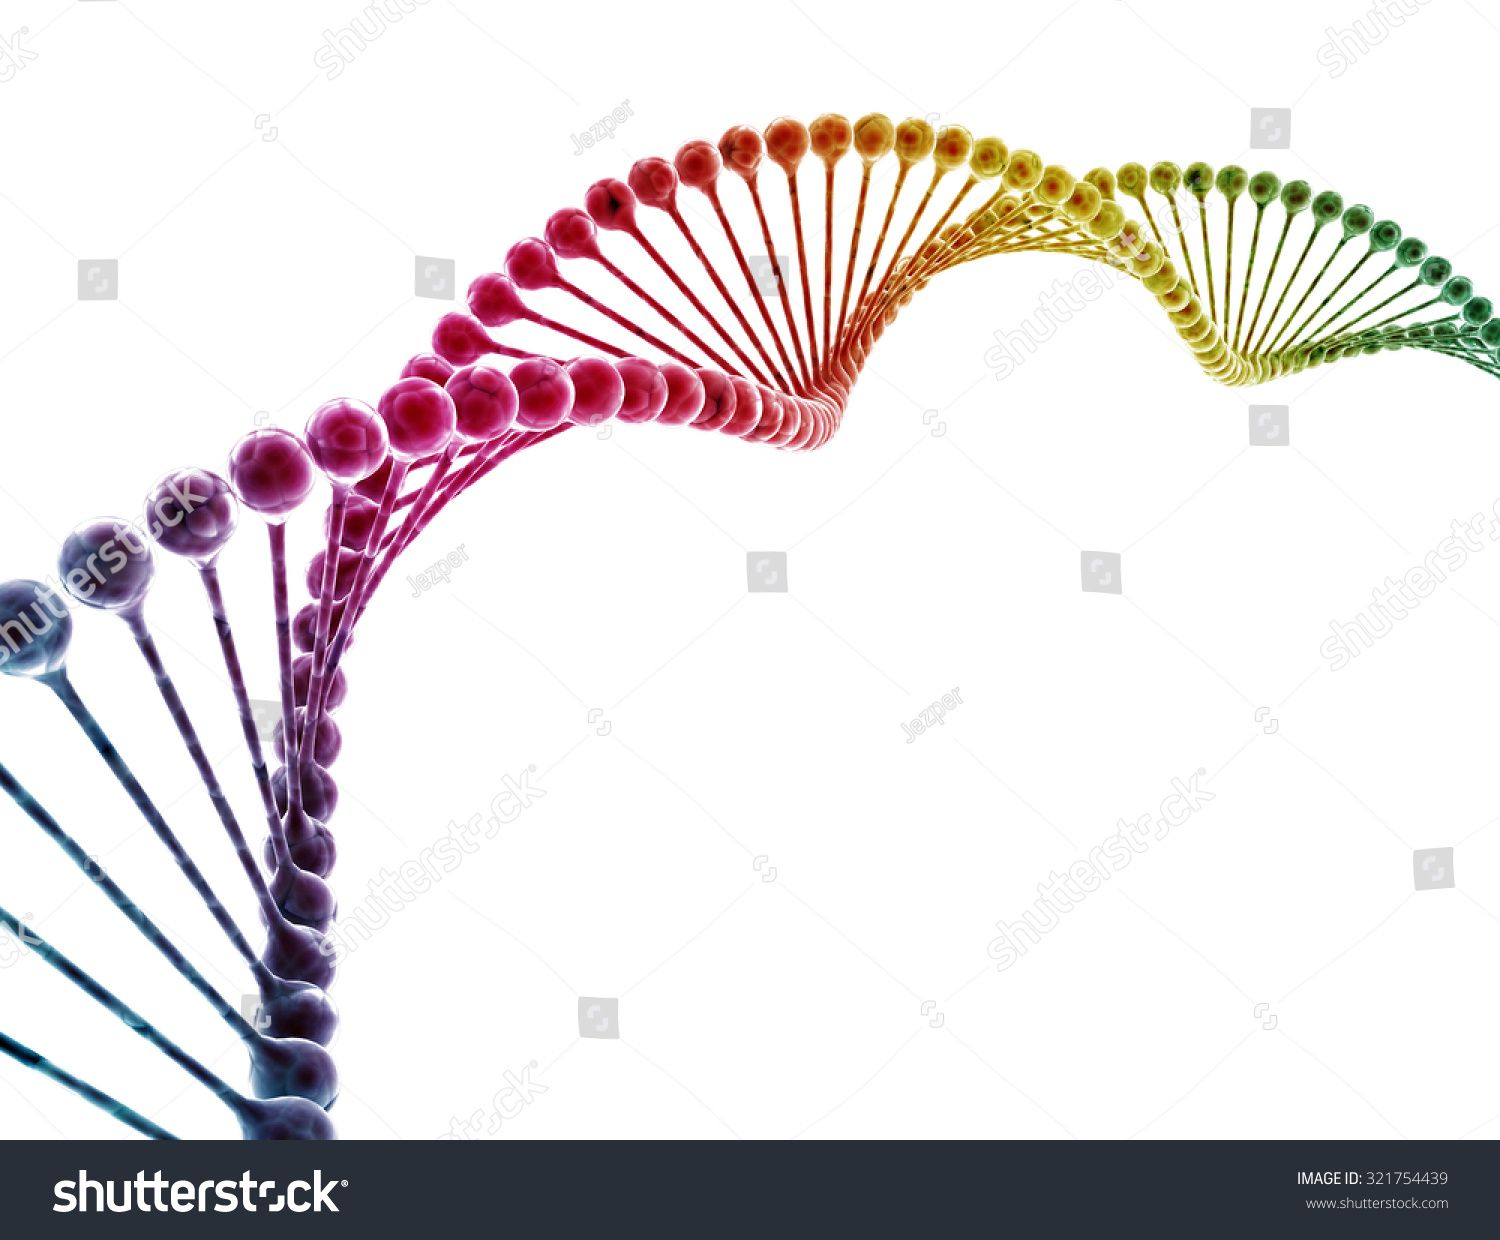 DNA multi color isolated on white background Ad , AD,